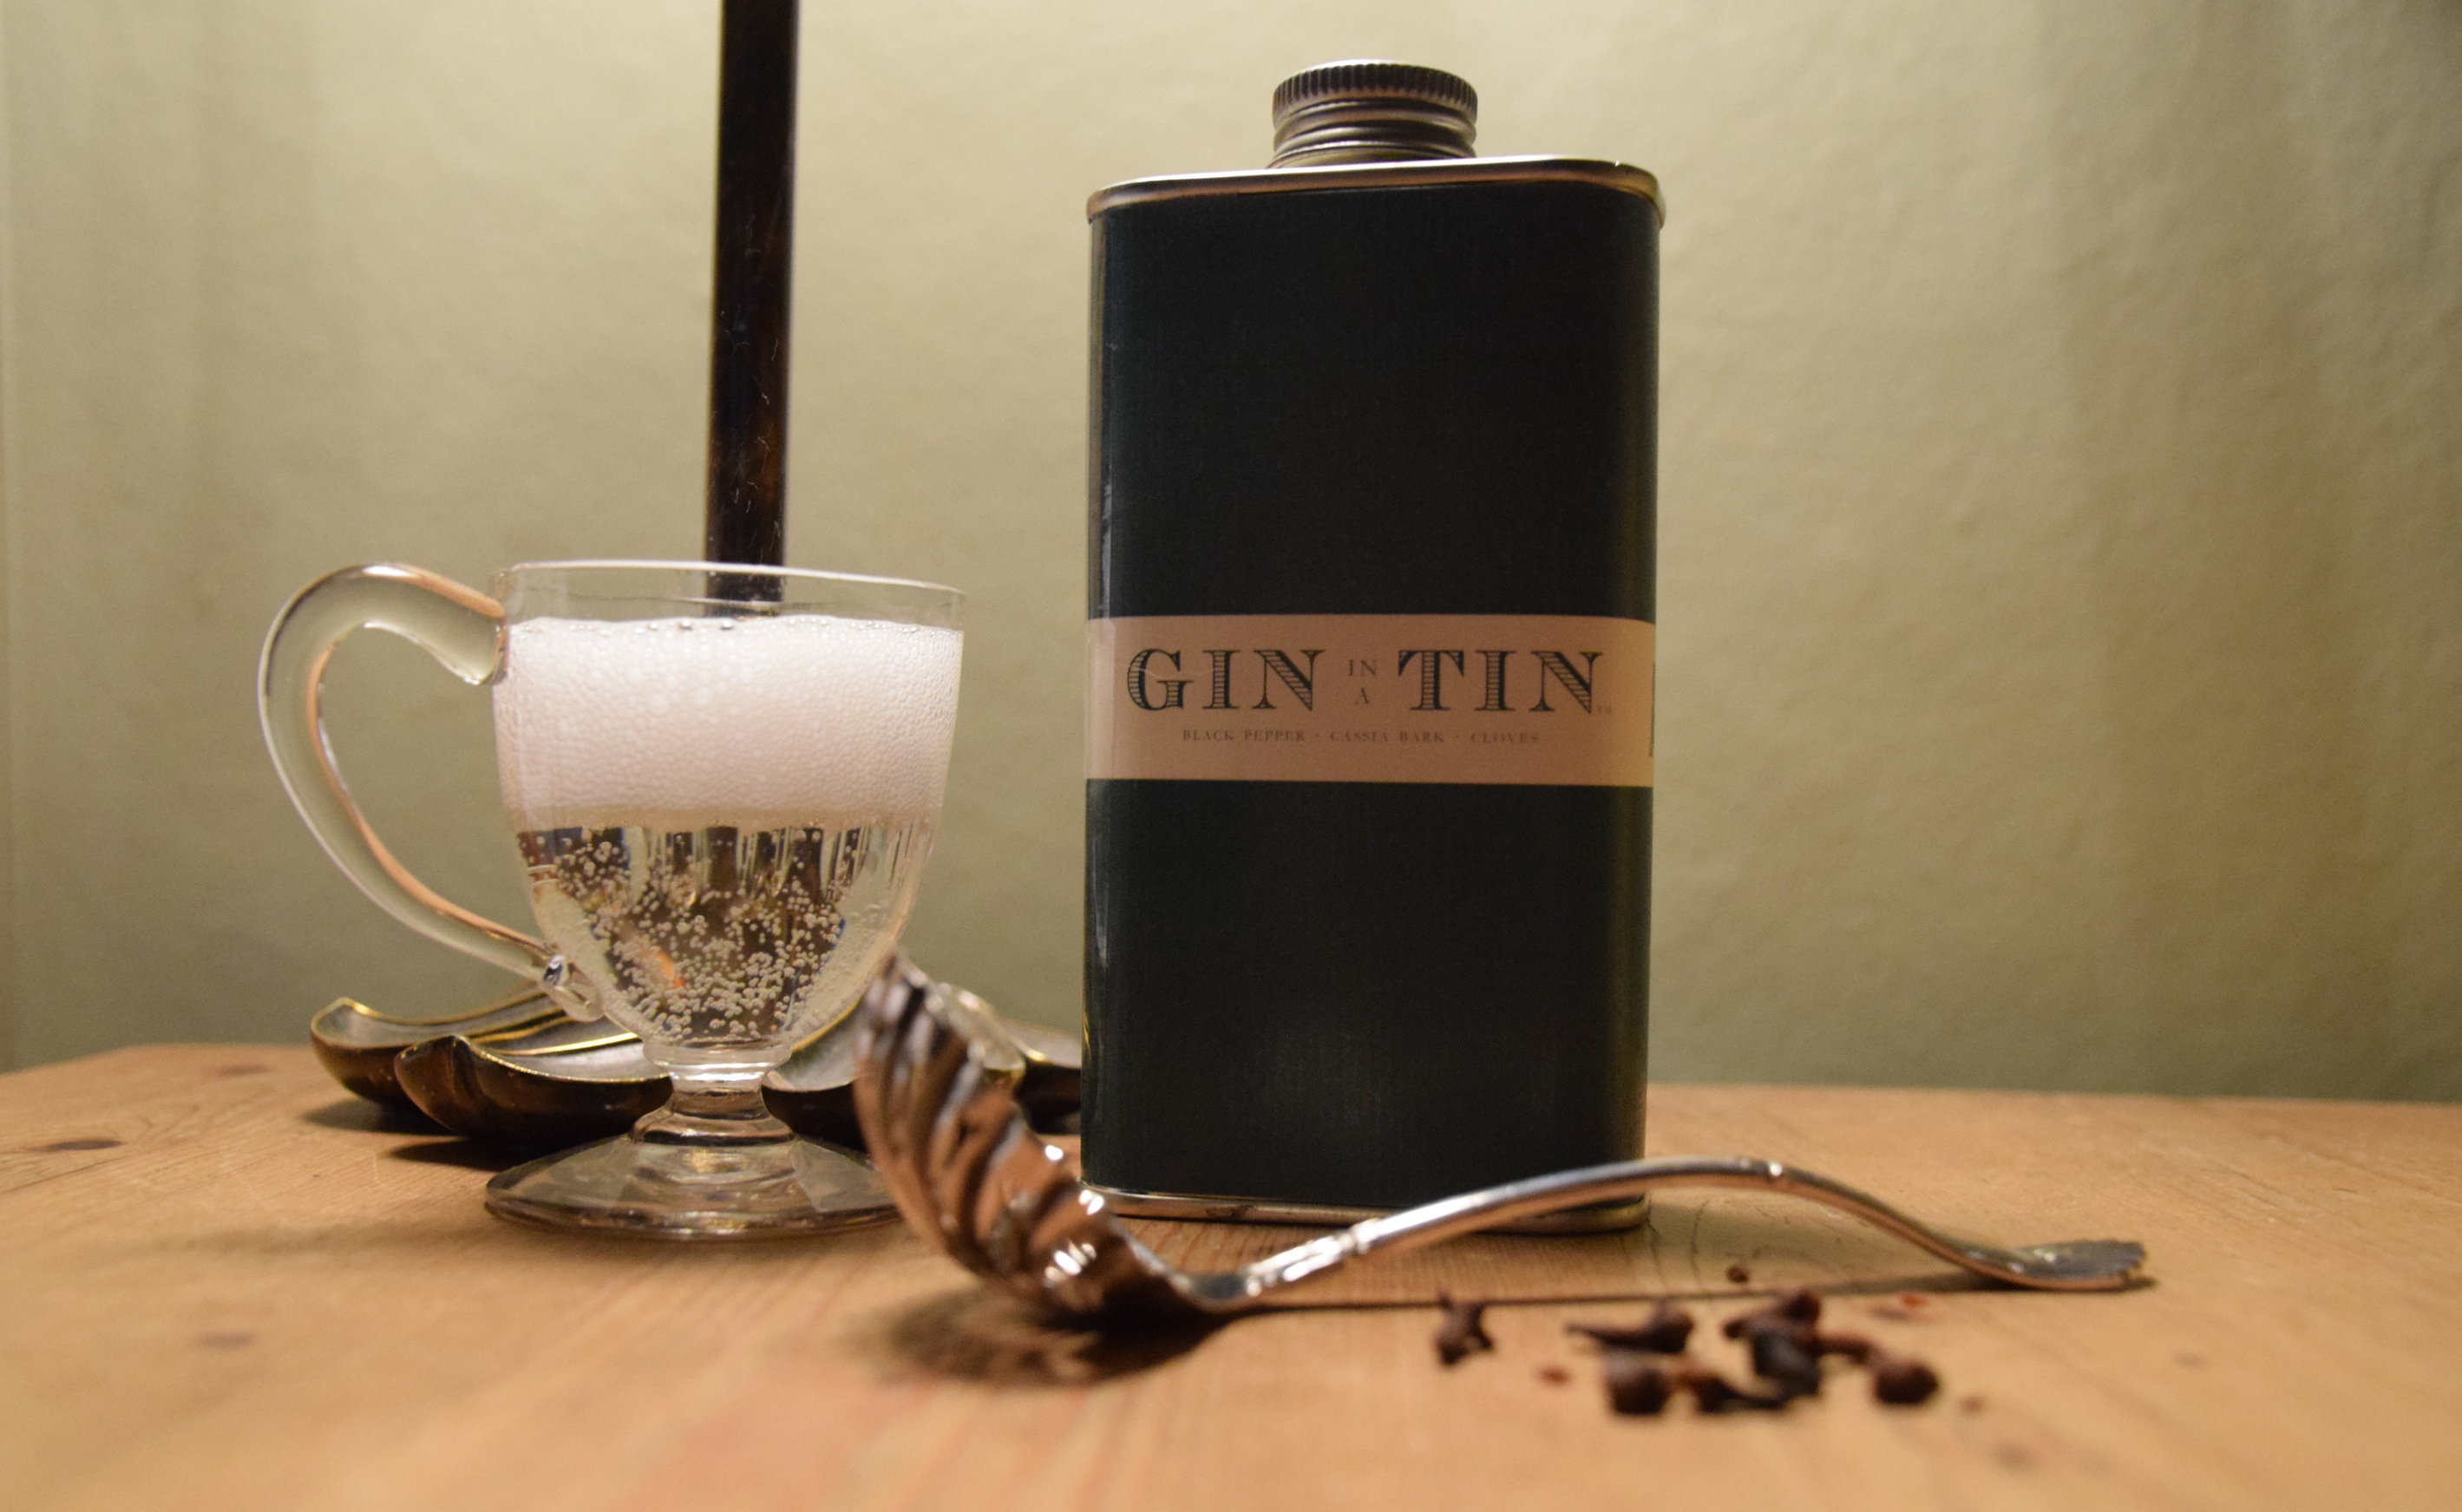 GIN IN A TIN - BLACK PEPPER, CASSIA BARK & CLOVES NO.3